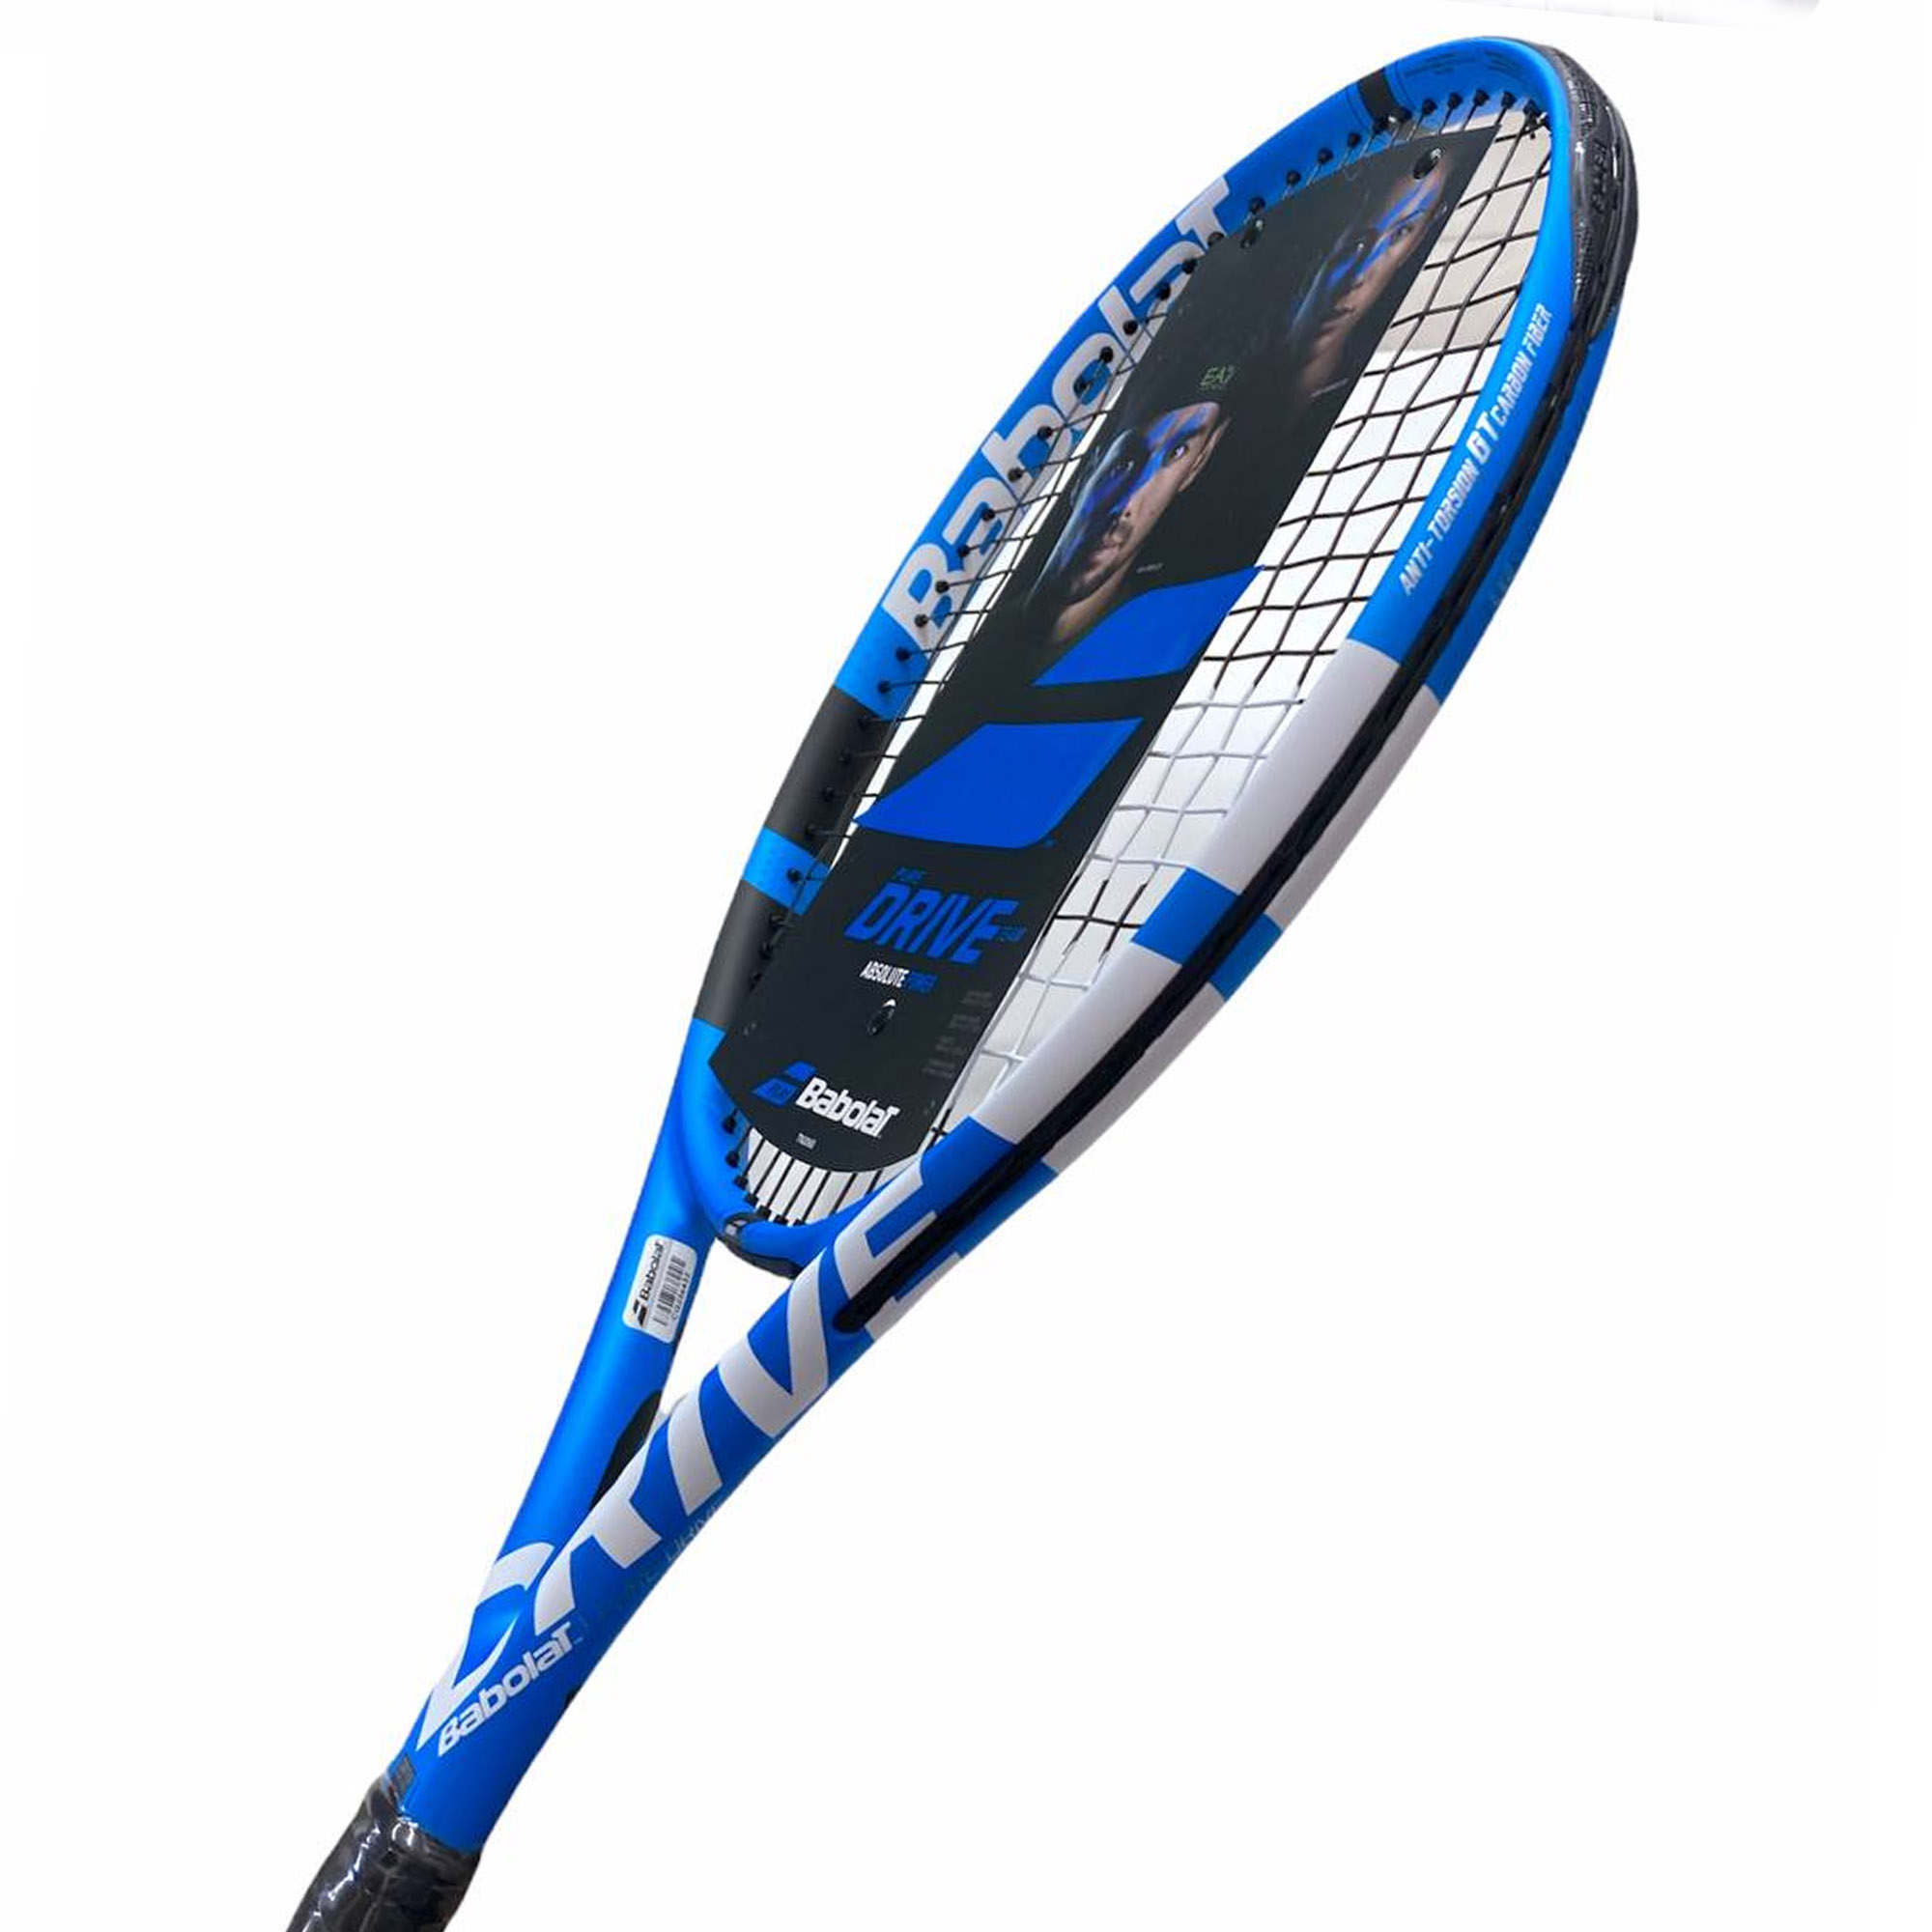 Raquete Babolat Pure Drive Team Absolute Power-285g